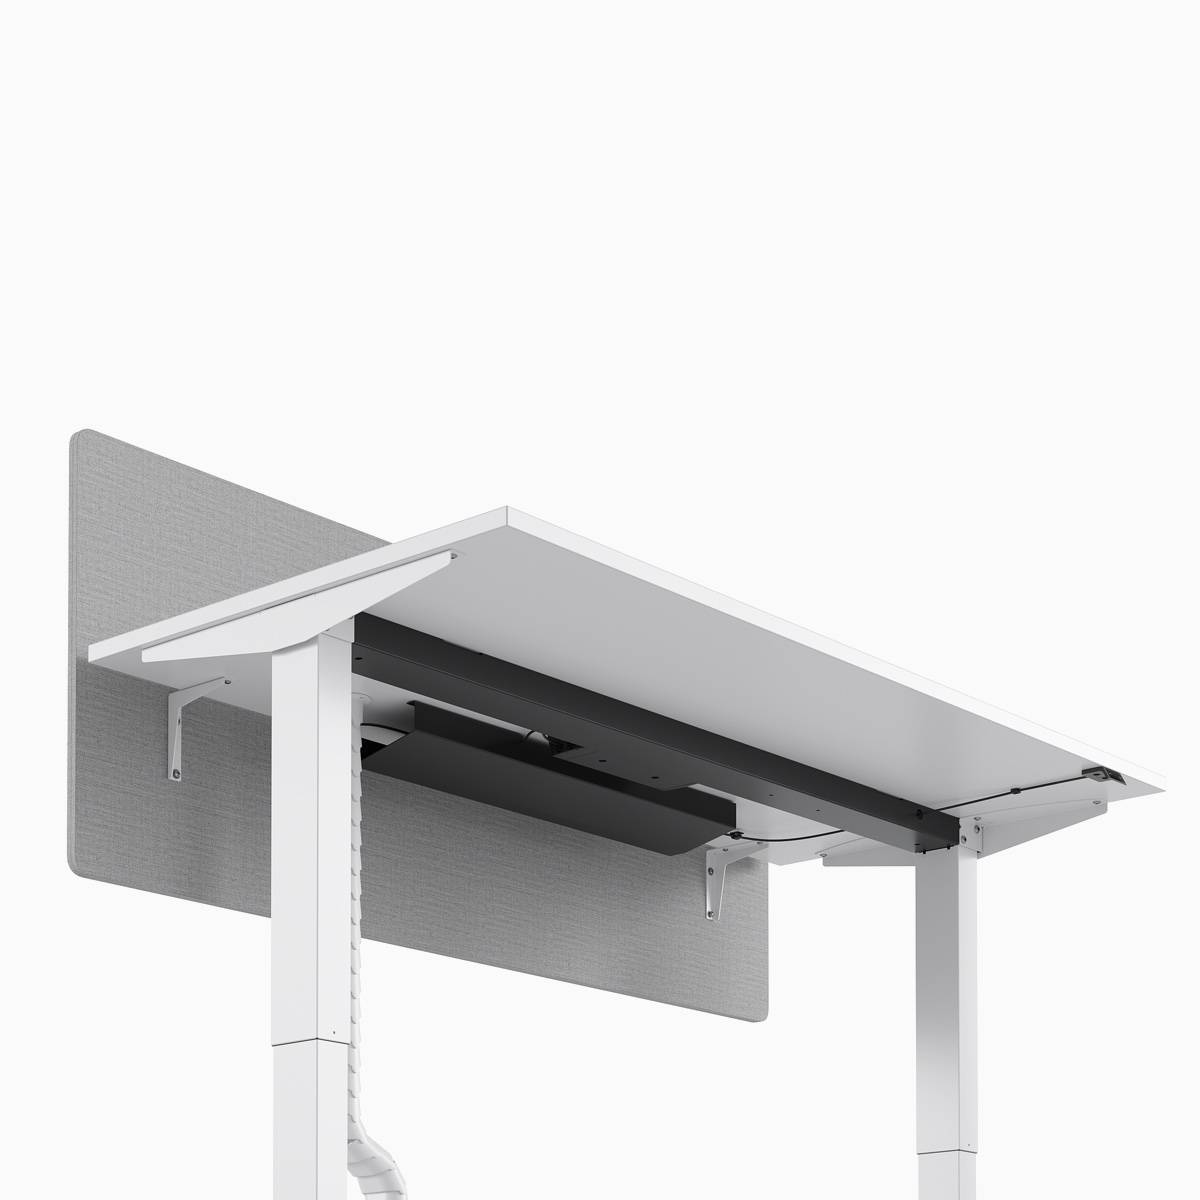 A close-up view of the under structure of a Nevi Sit-Stand Desk.